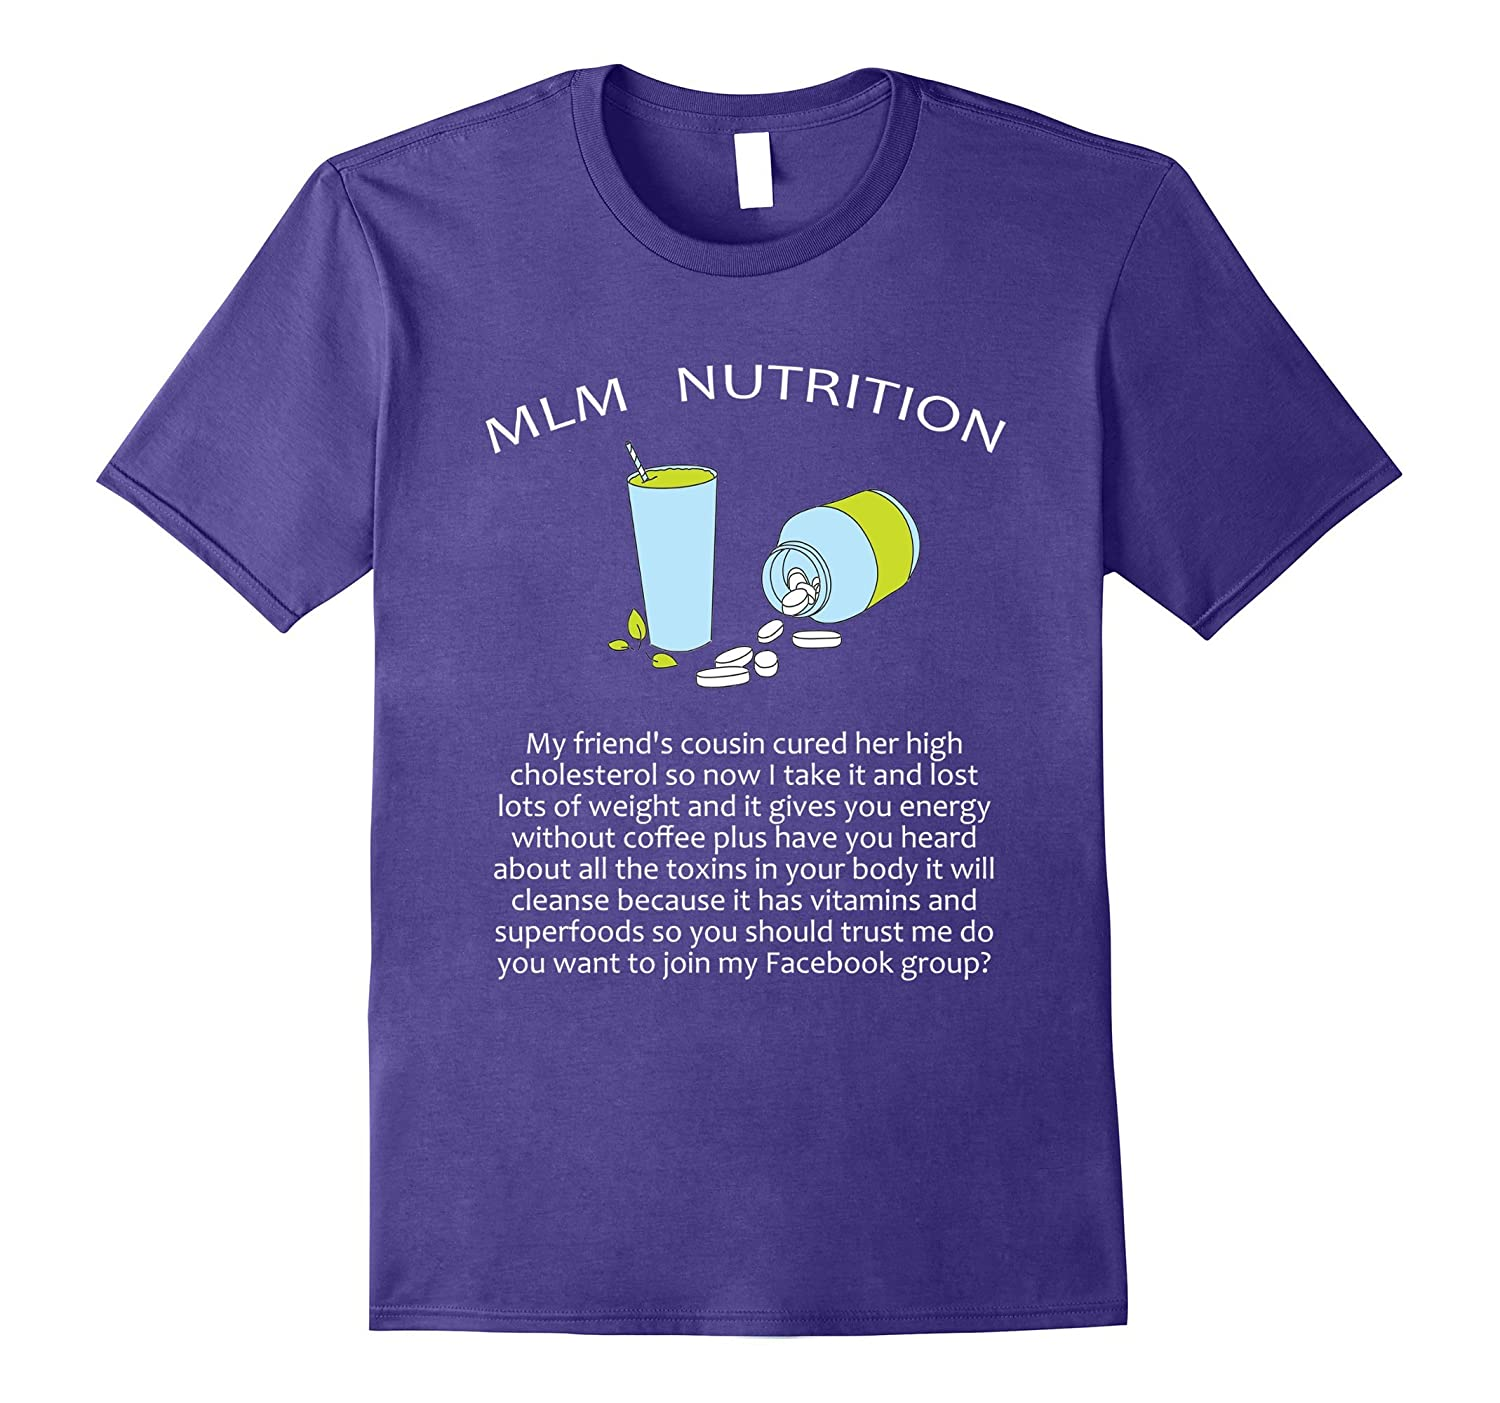 Funny MLM Nutrition T Shirt - Run on Diet sales pitch-Vaci